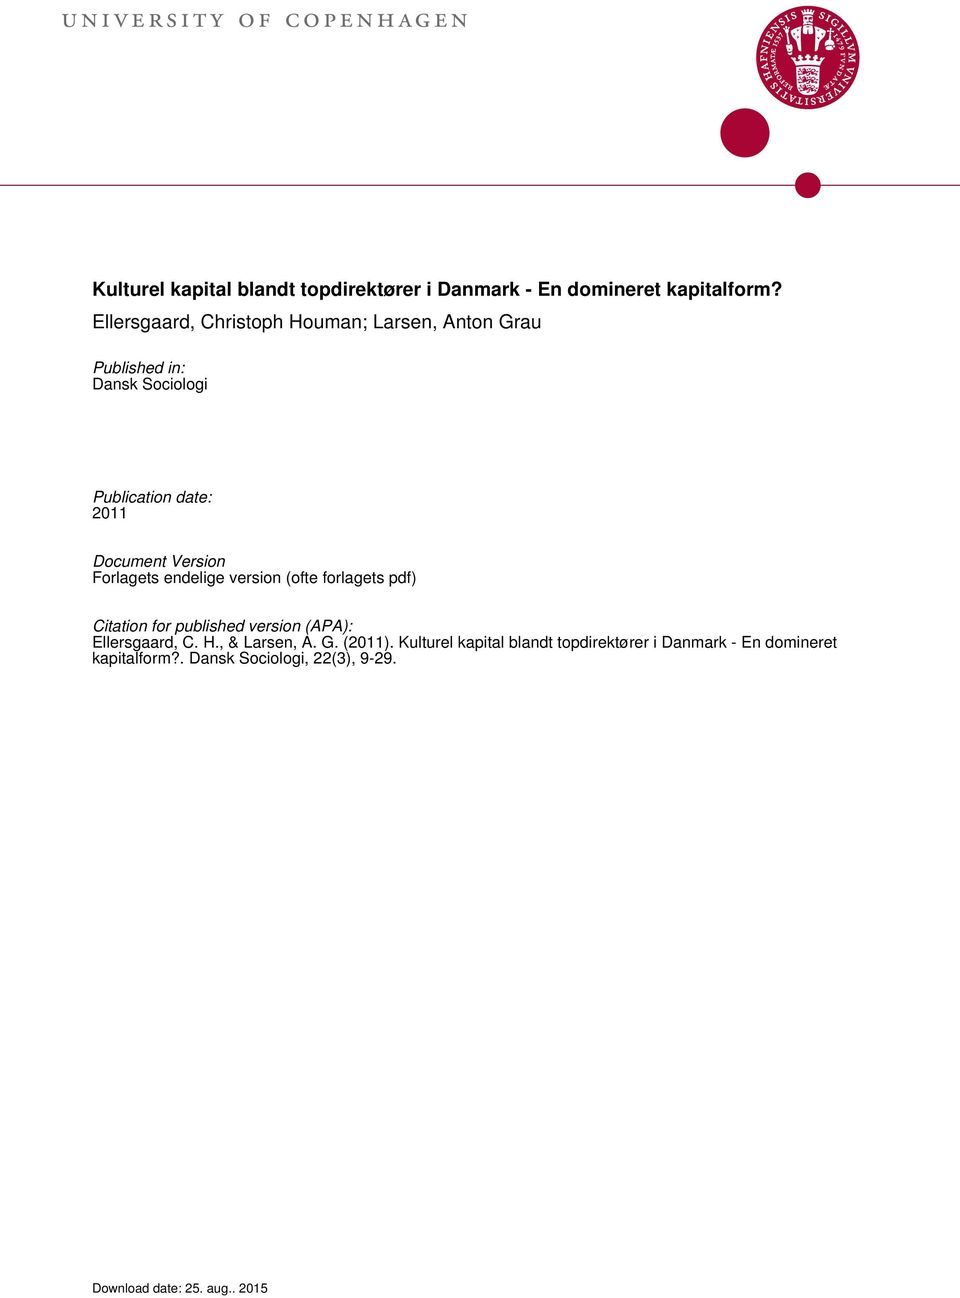 Forlagets endelige version (ofte forlagets pdf) Citation for published version (APA): Ellersgaard, C. H., & Larsen, A. G.